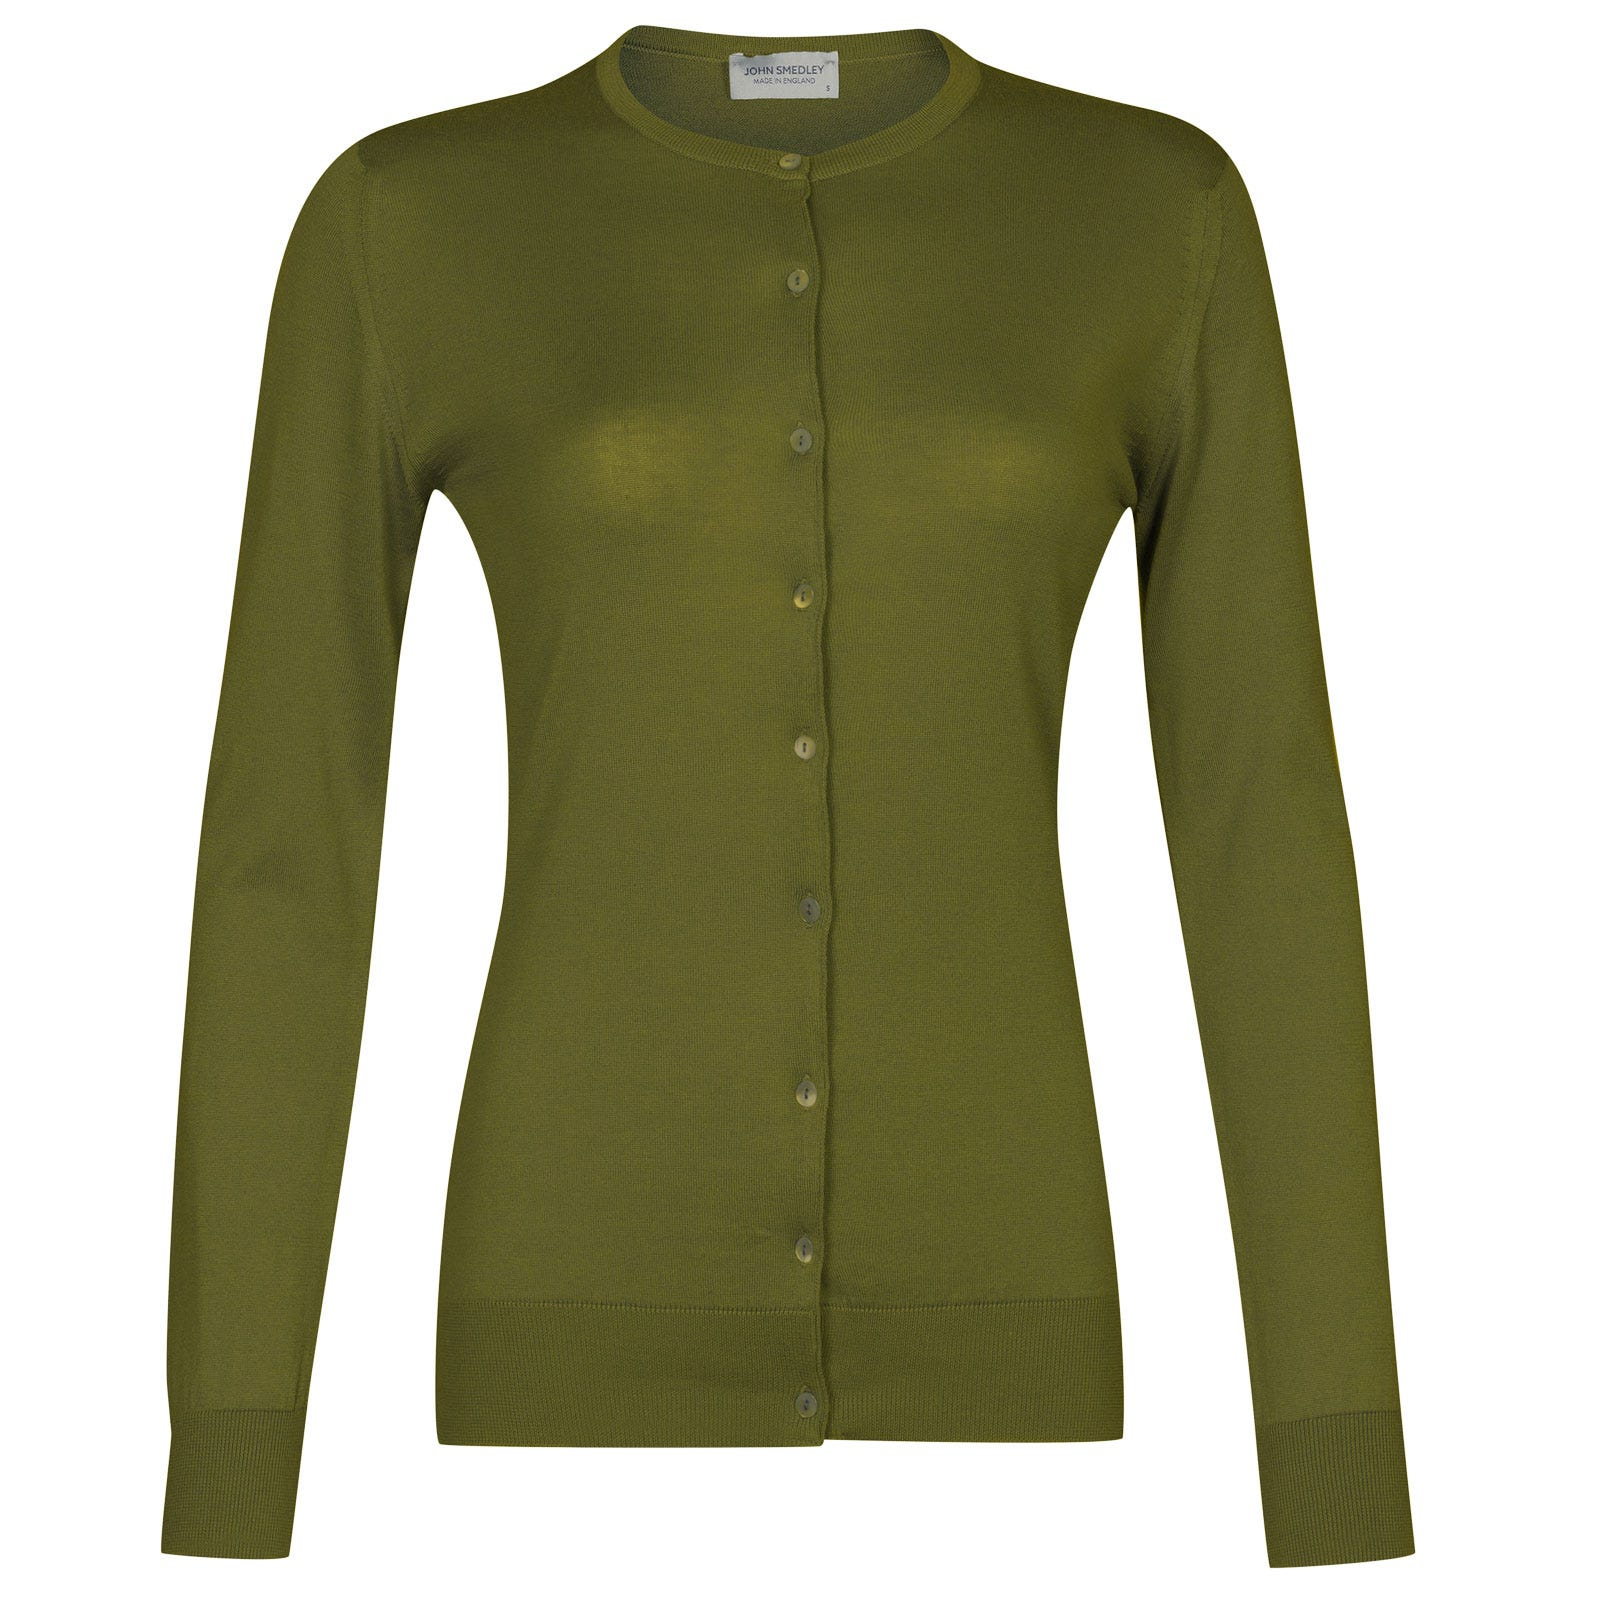 John Smedley Islington Sea Island Cotton Cardigan in Lumsdale Green-XL